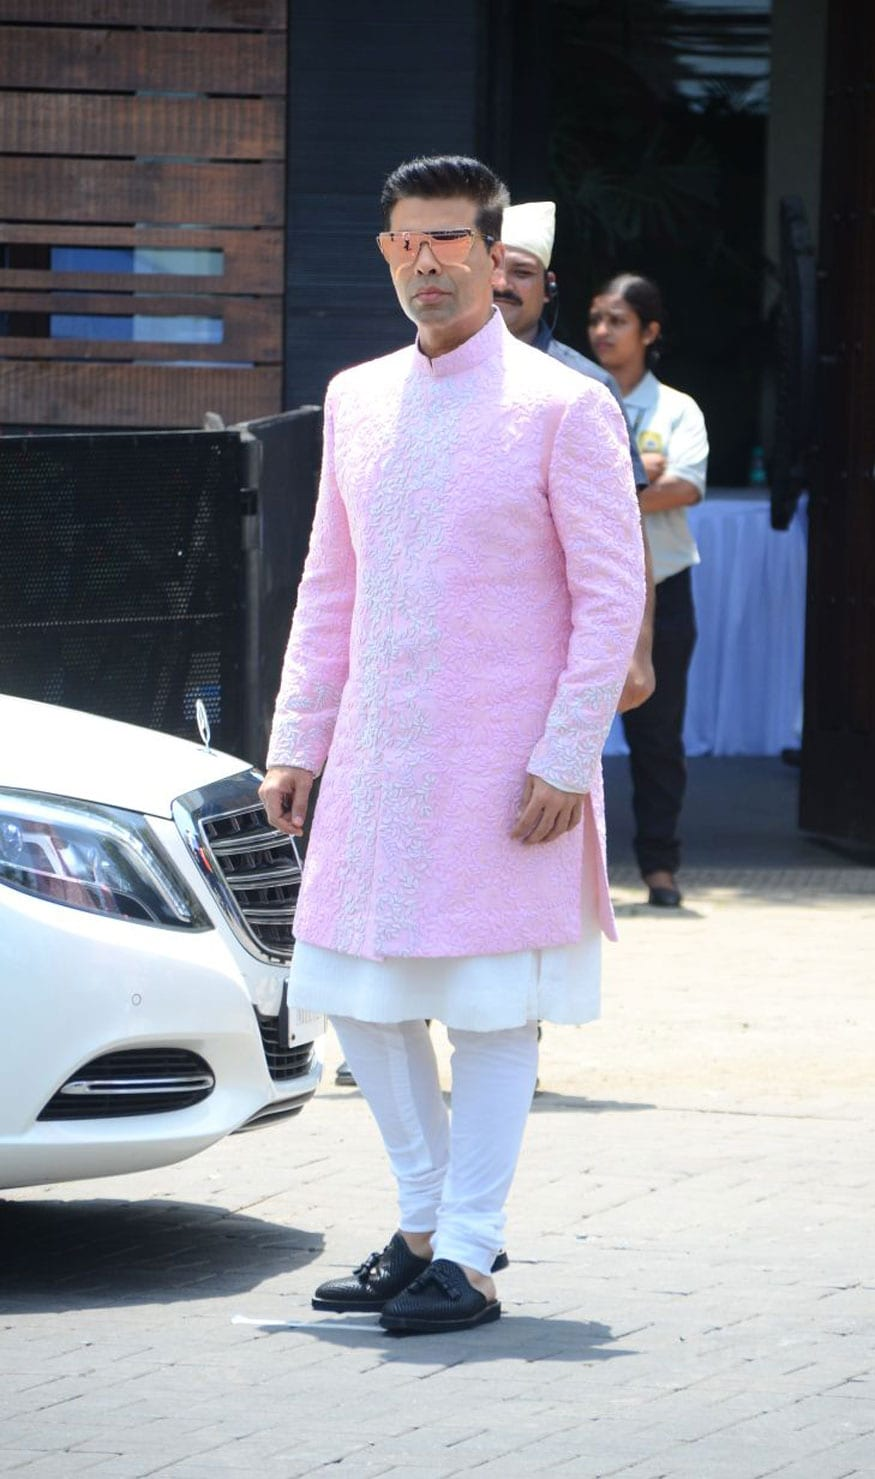 Karan Johar poses for photographers on his arrival at Sonam Kapoor and Anand Ahuja's wedding in Mumbai. (Image: Viral Bhayani)